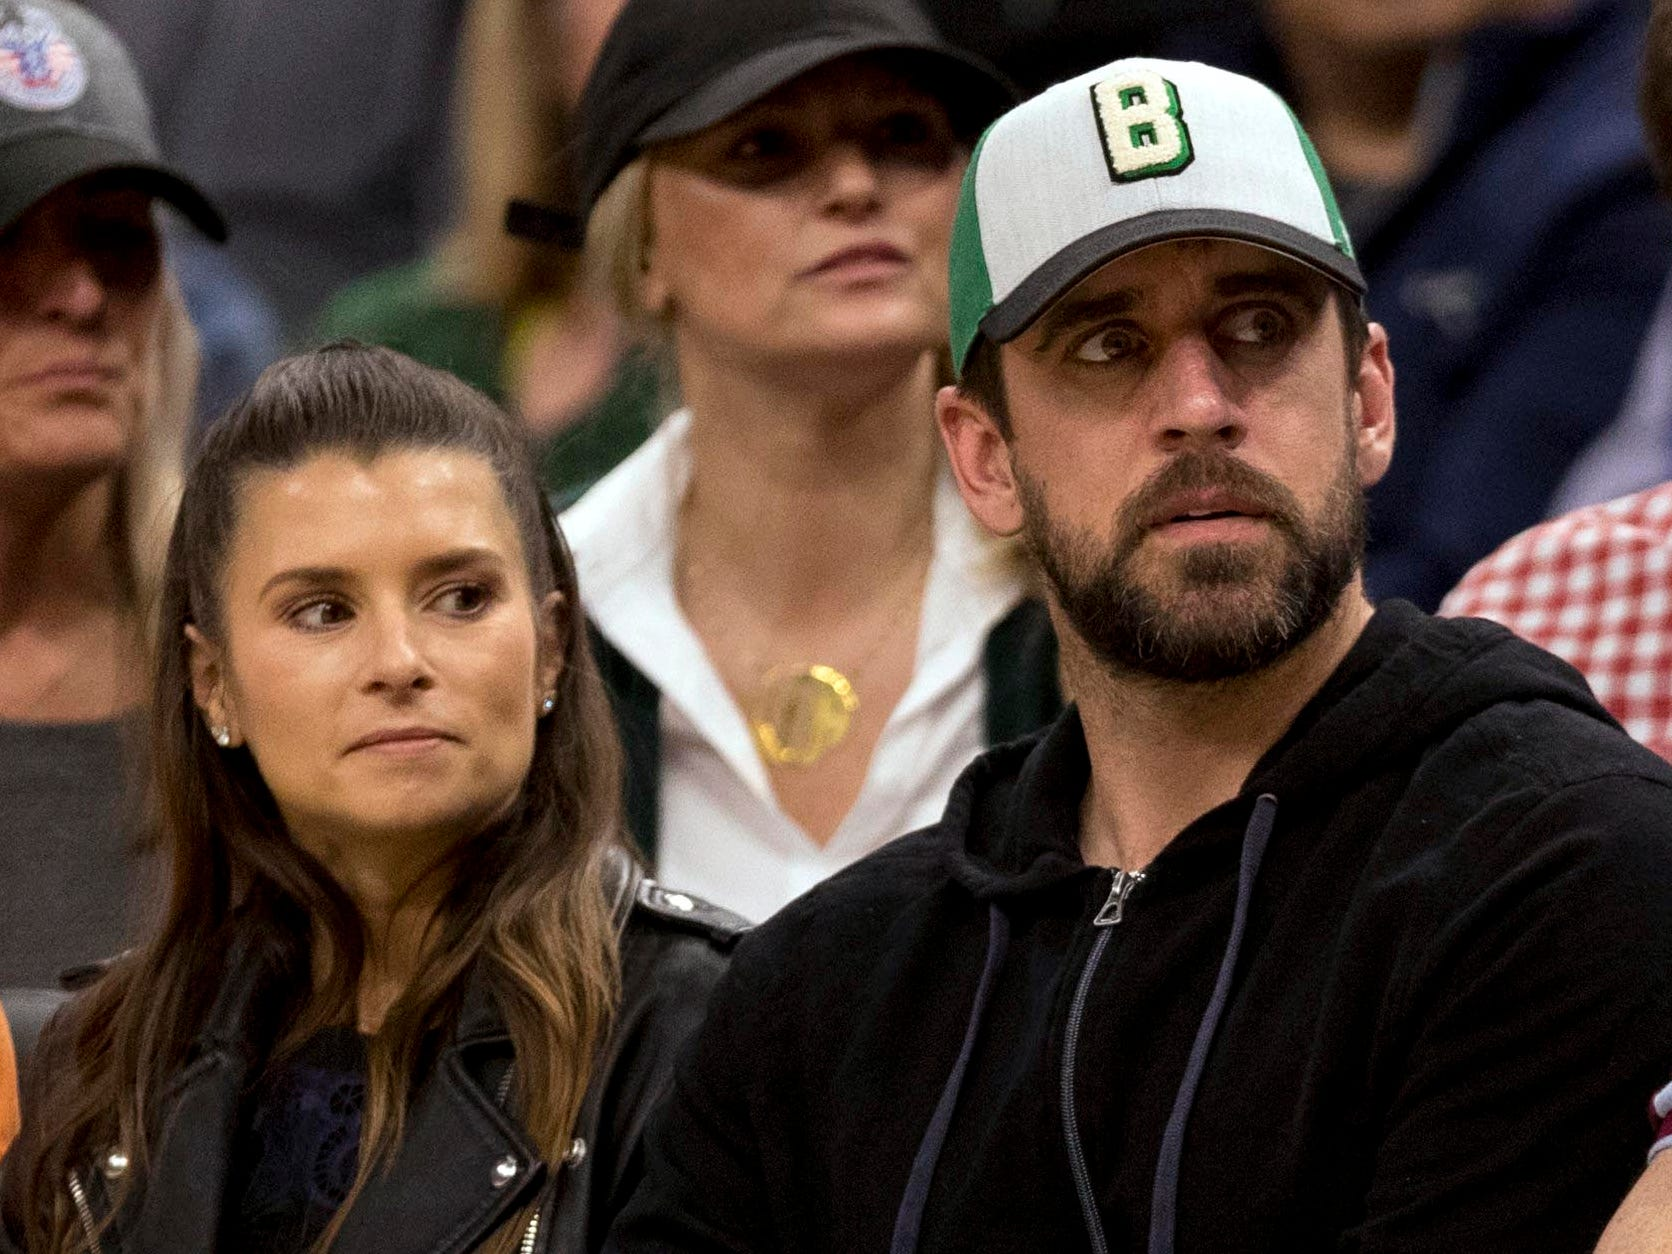 May 8: Danica Patrick and Green Bay Packers quarterback Aaron Rodgers watch the Bucks rout the Boston Celtics during Game 5 in Milwaukee.